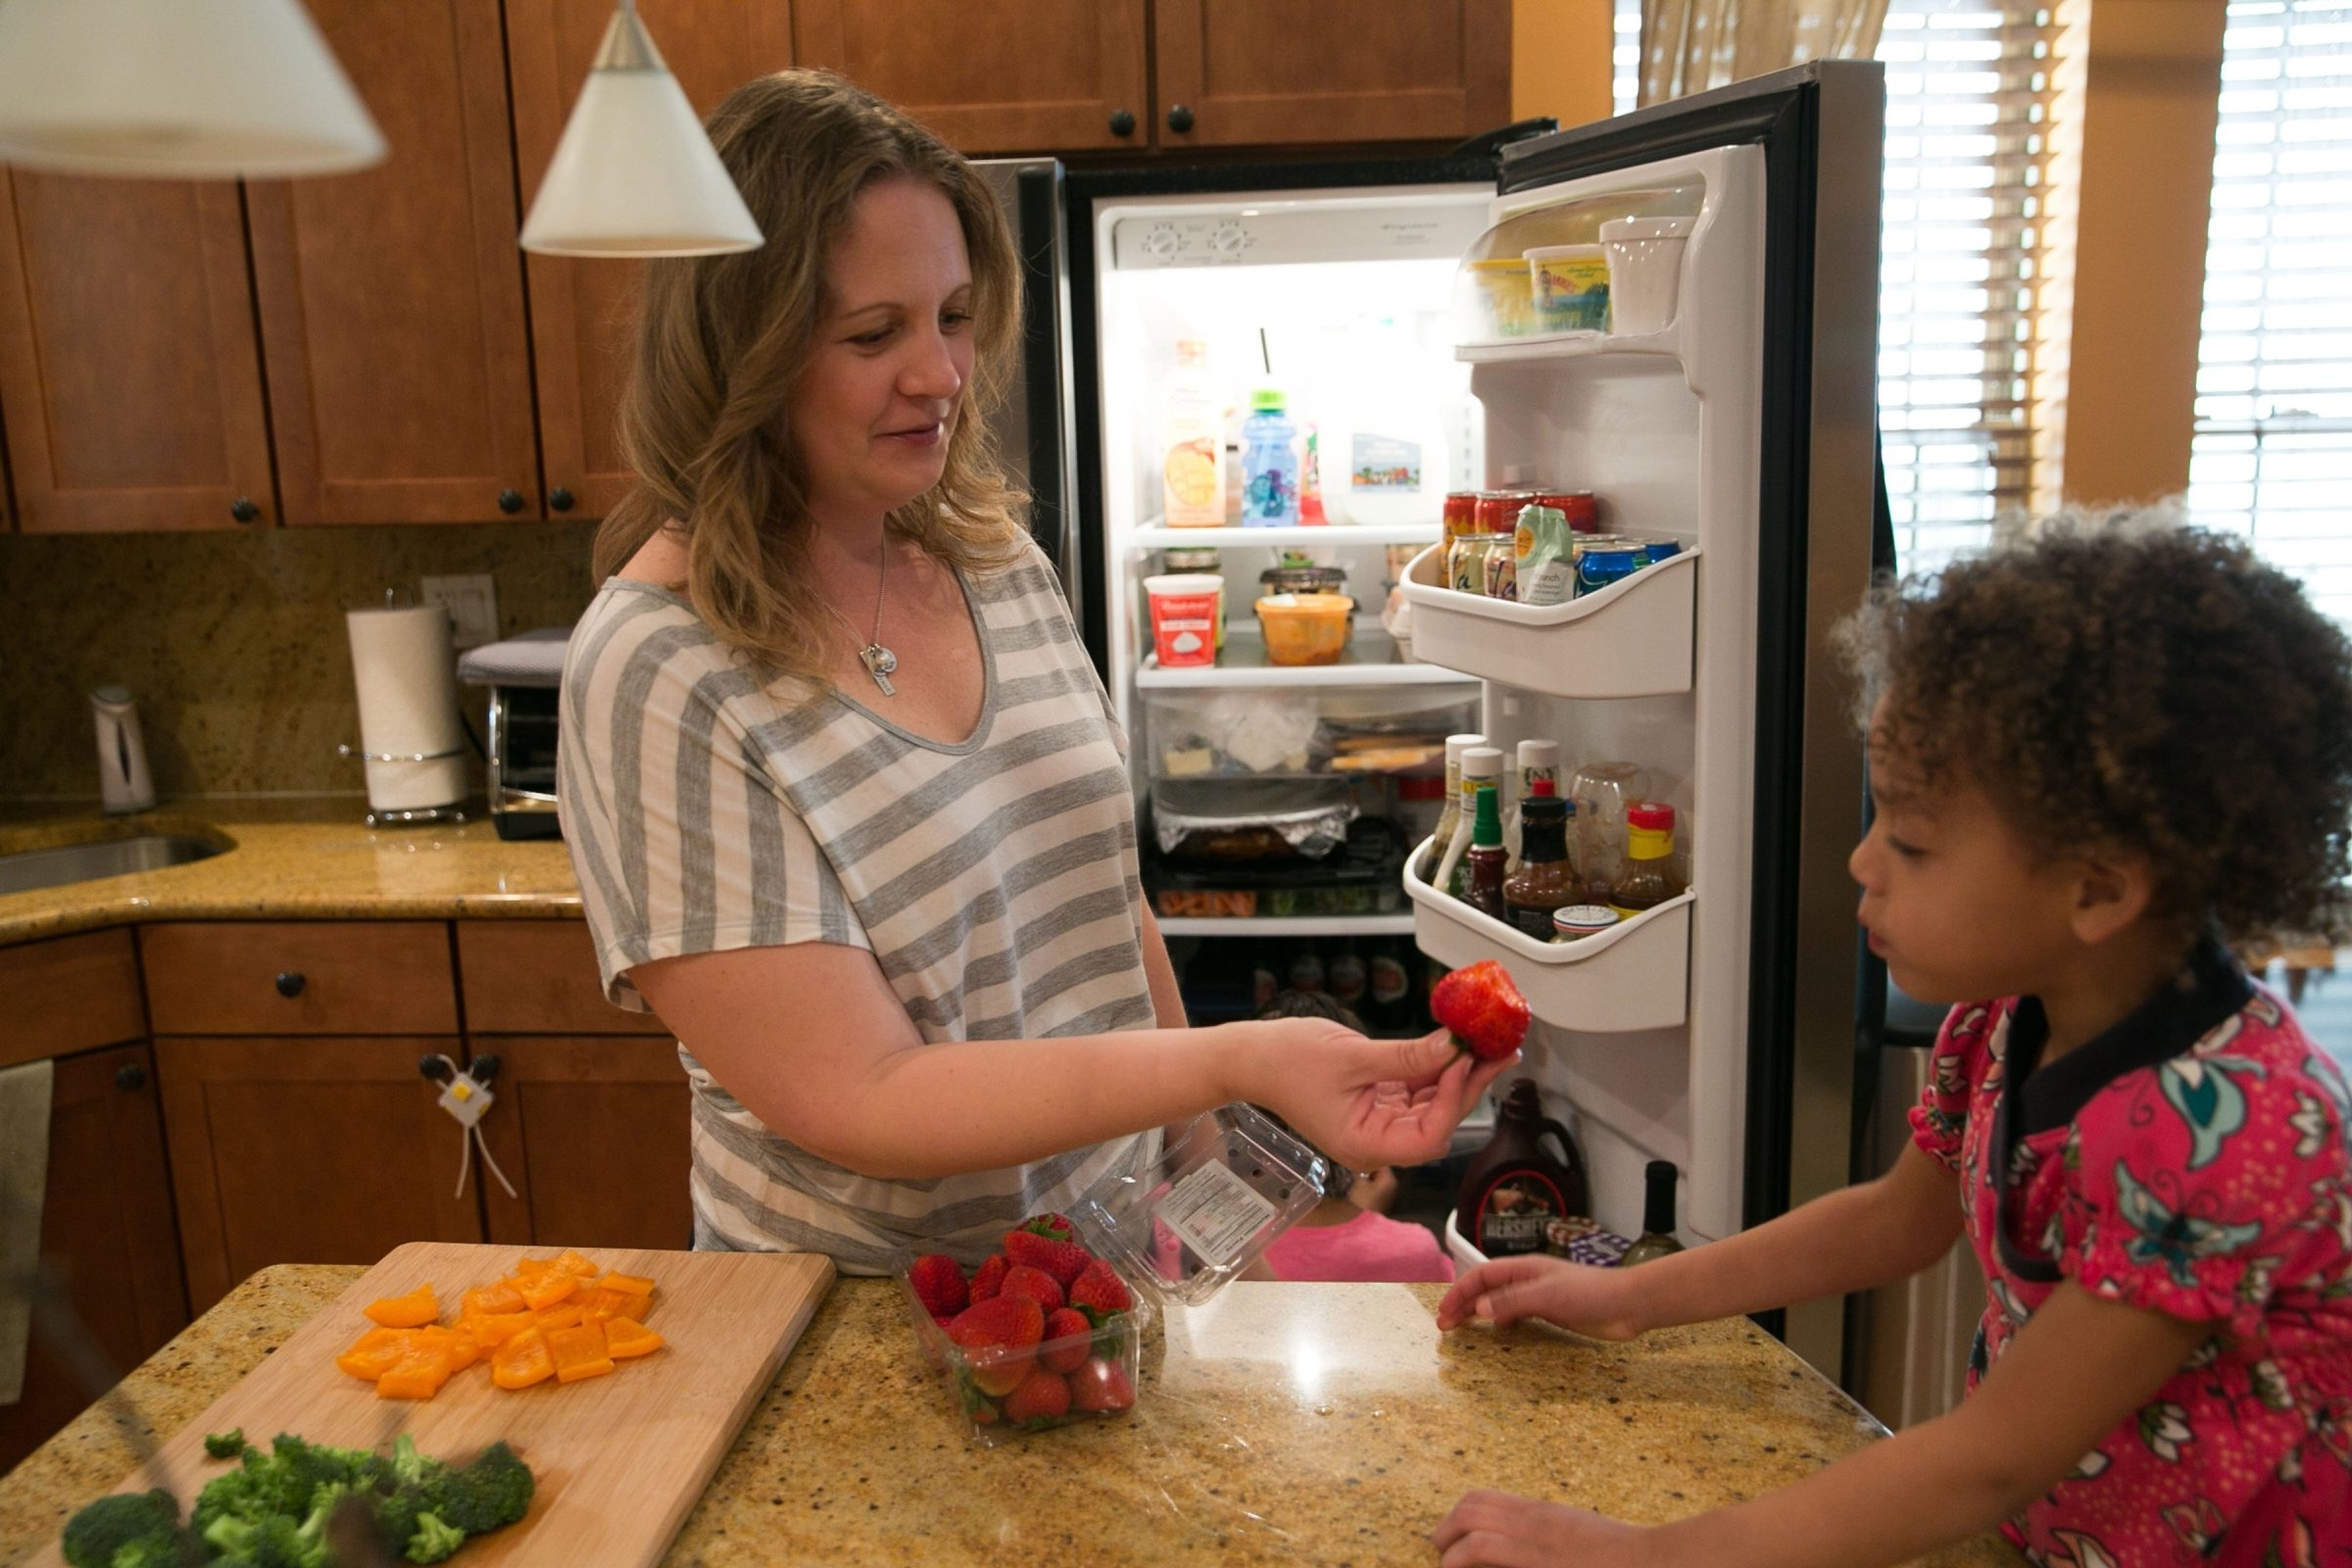 Jennifer Leigh, seen with her daughter Janelle at their home in Evanston, Ill., lost her sense of smell in her 20s. She has adapted to daily tasks such as cooking by relying on past experience.